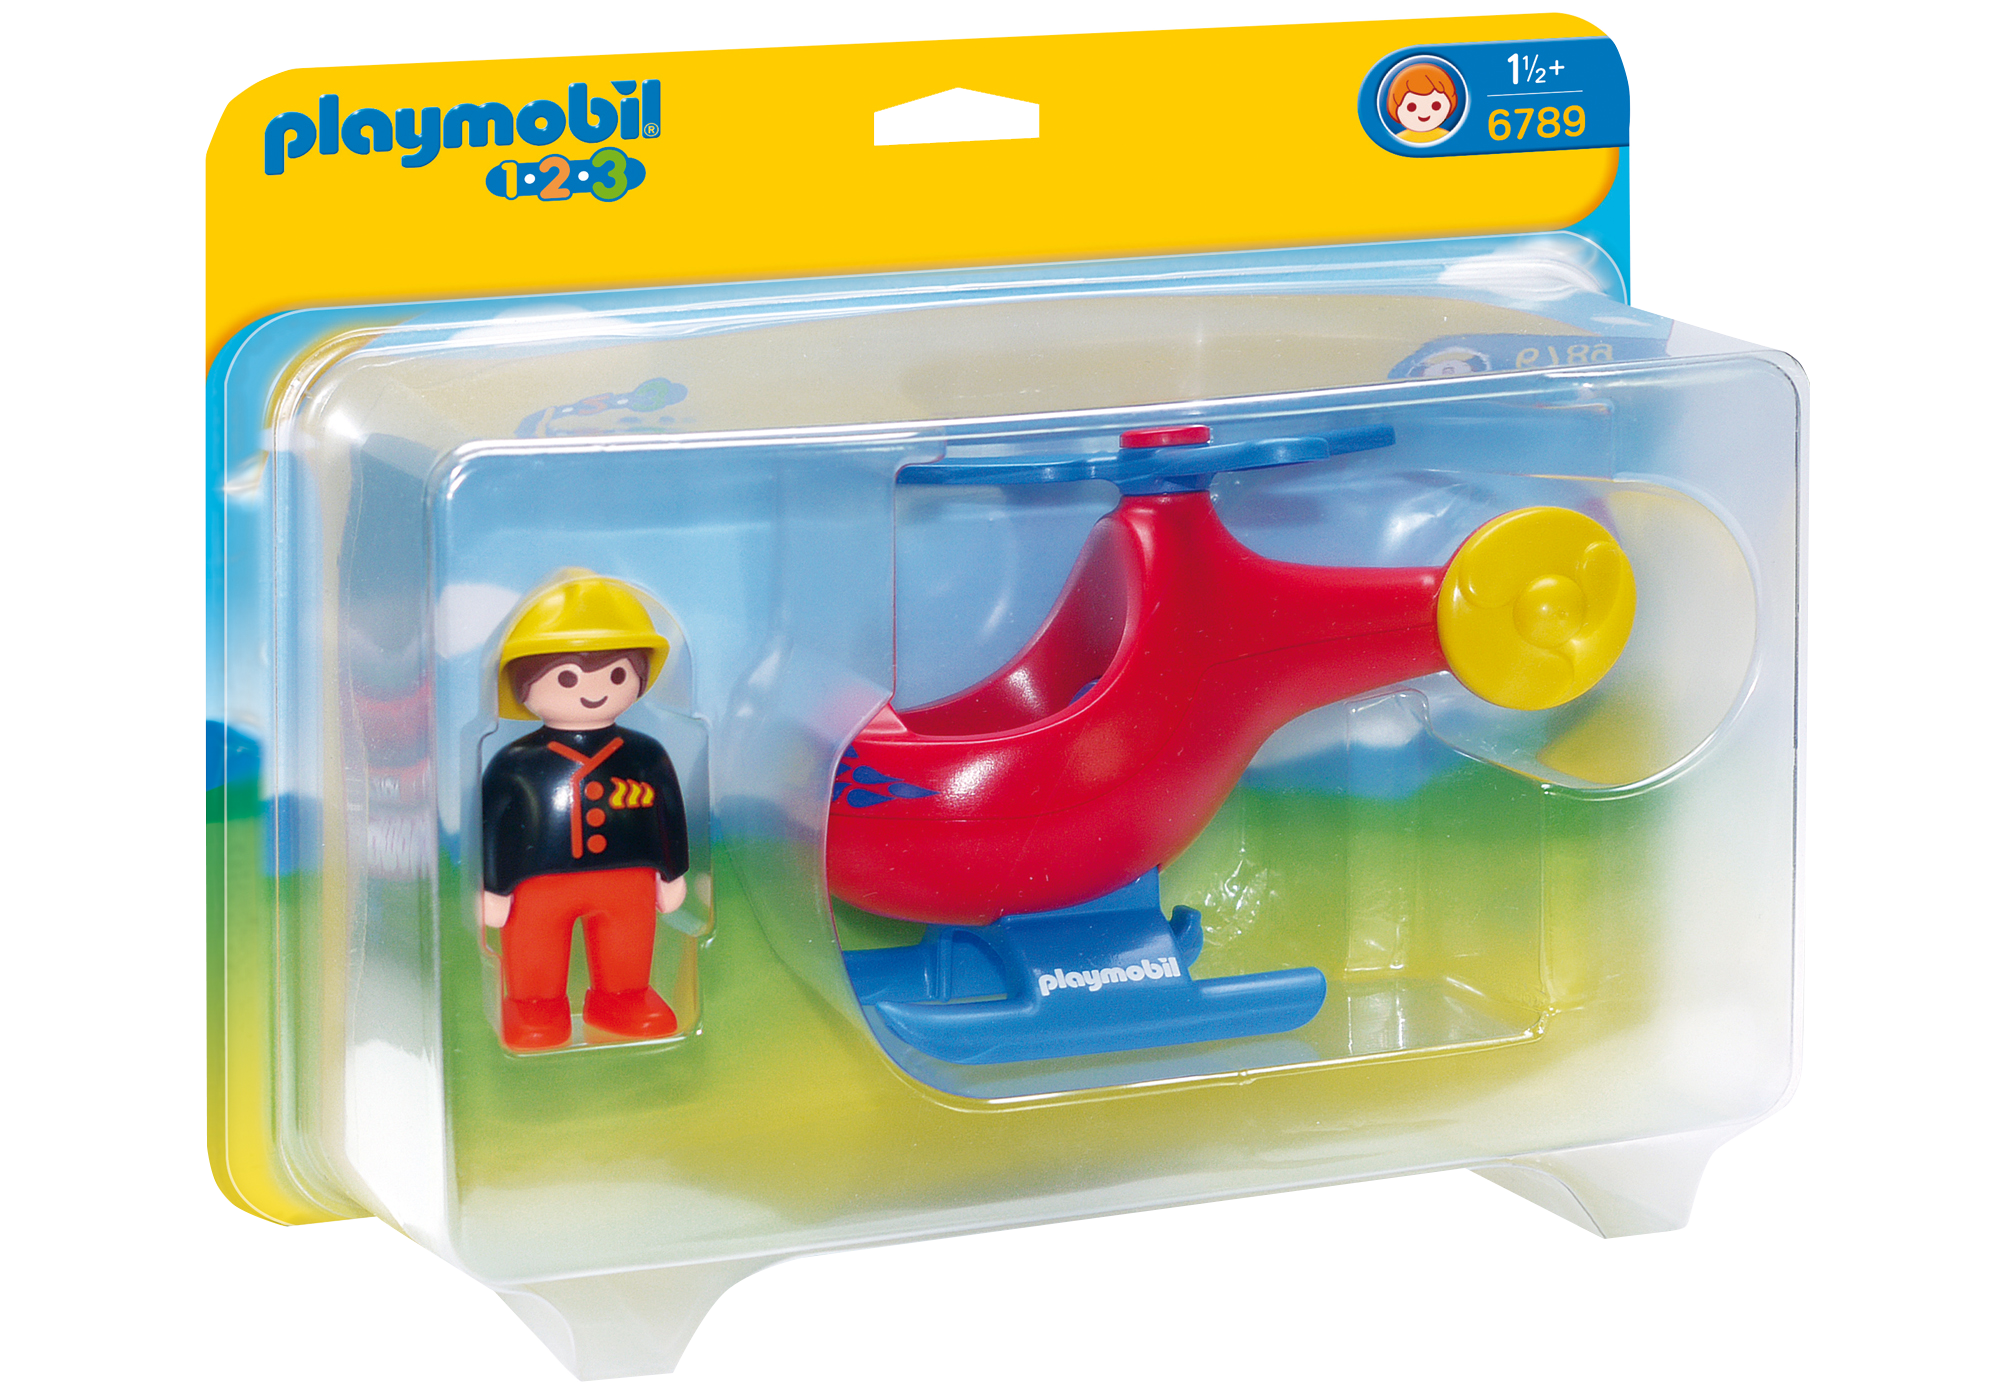 http://media.playmobil.com/i/playmobil/6789_product_box_front/1.2.3 Helicóptero de Rescate